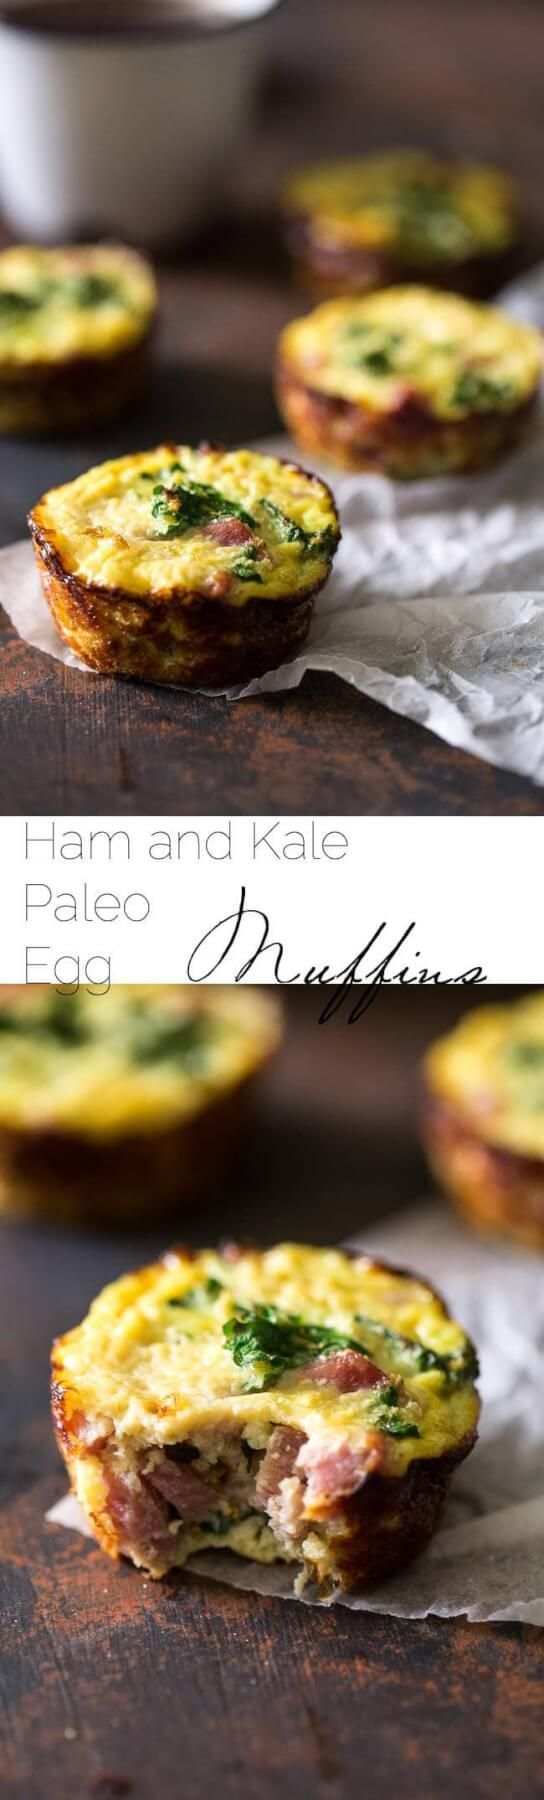 9 Paleo Egg Muffins Recipes - A Way to Change Up Breakfast